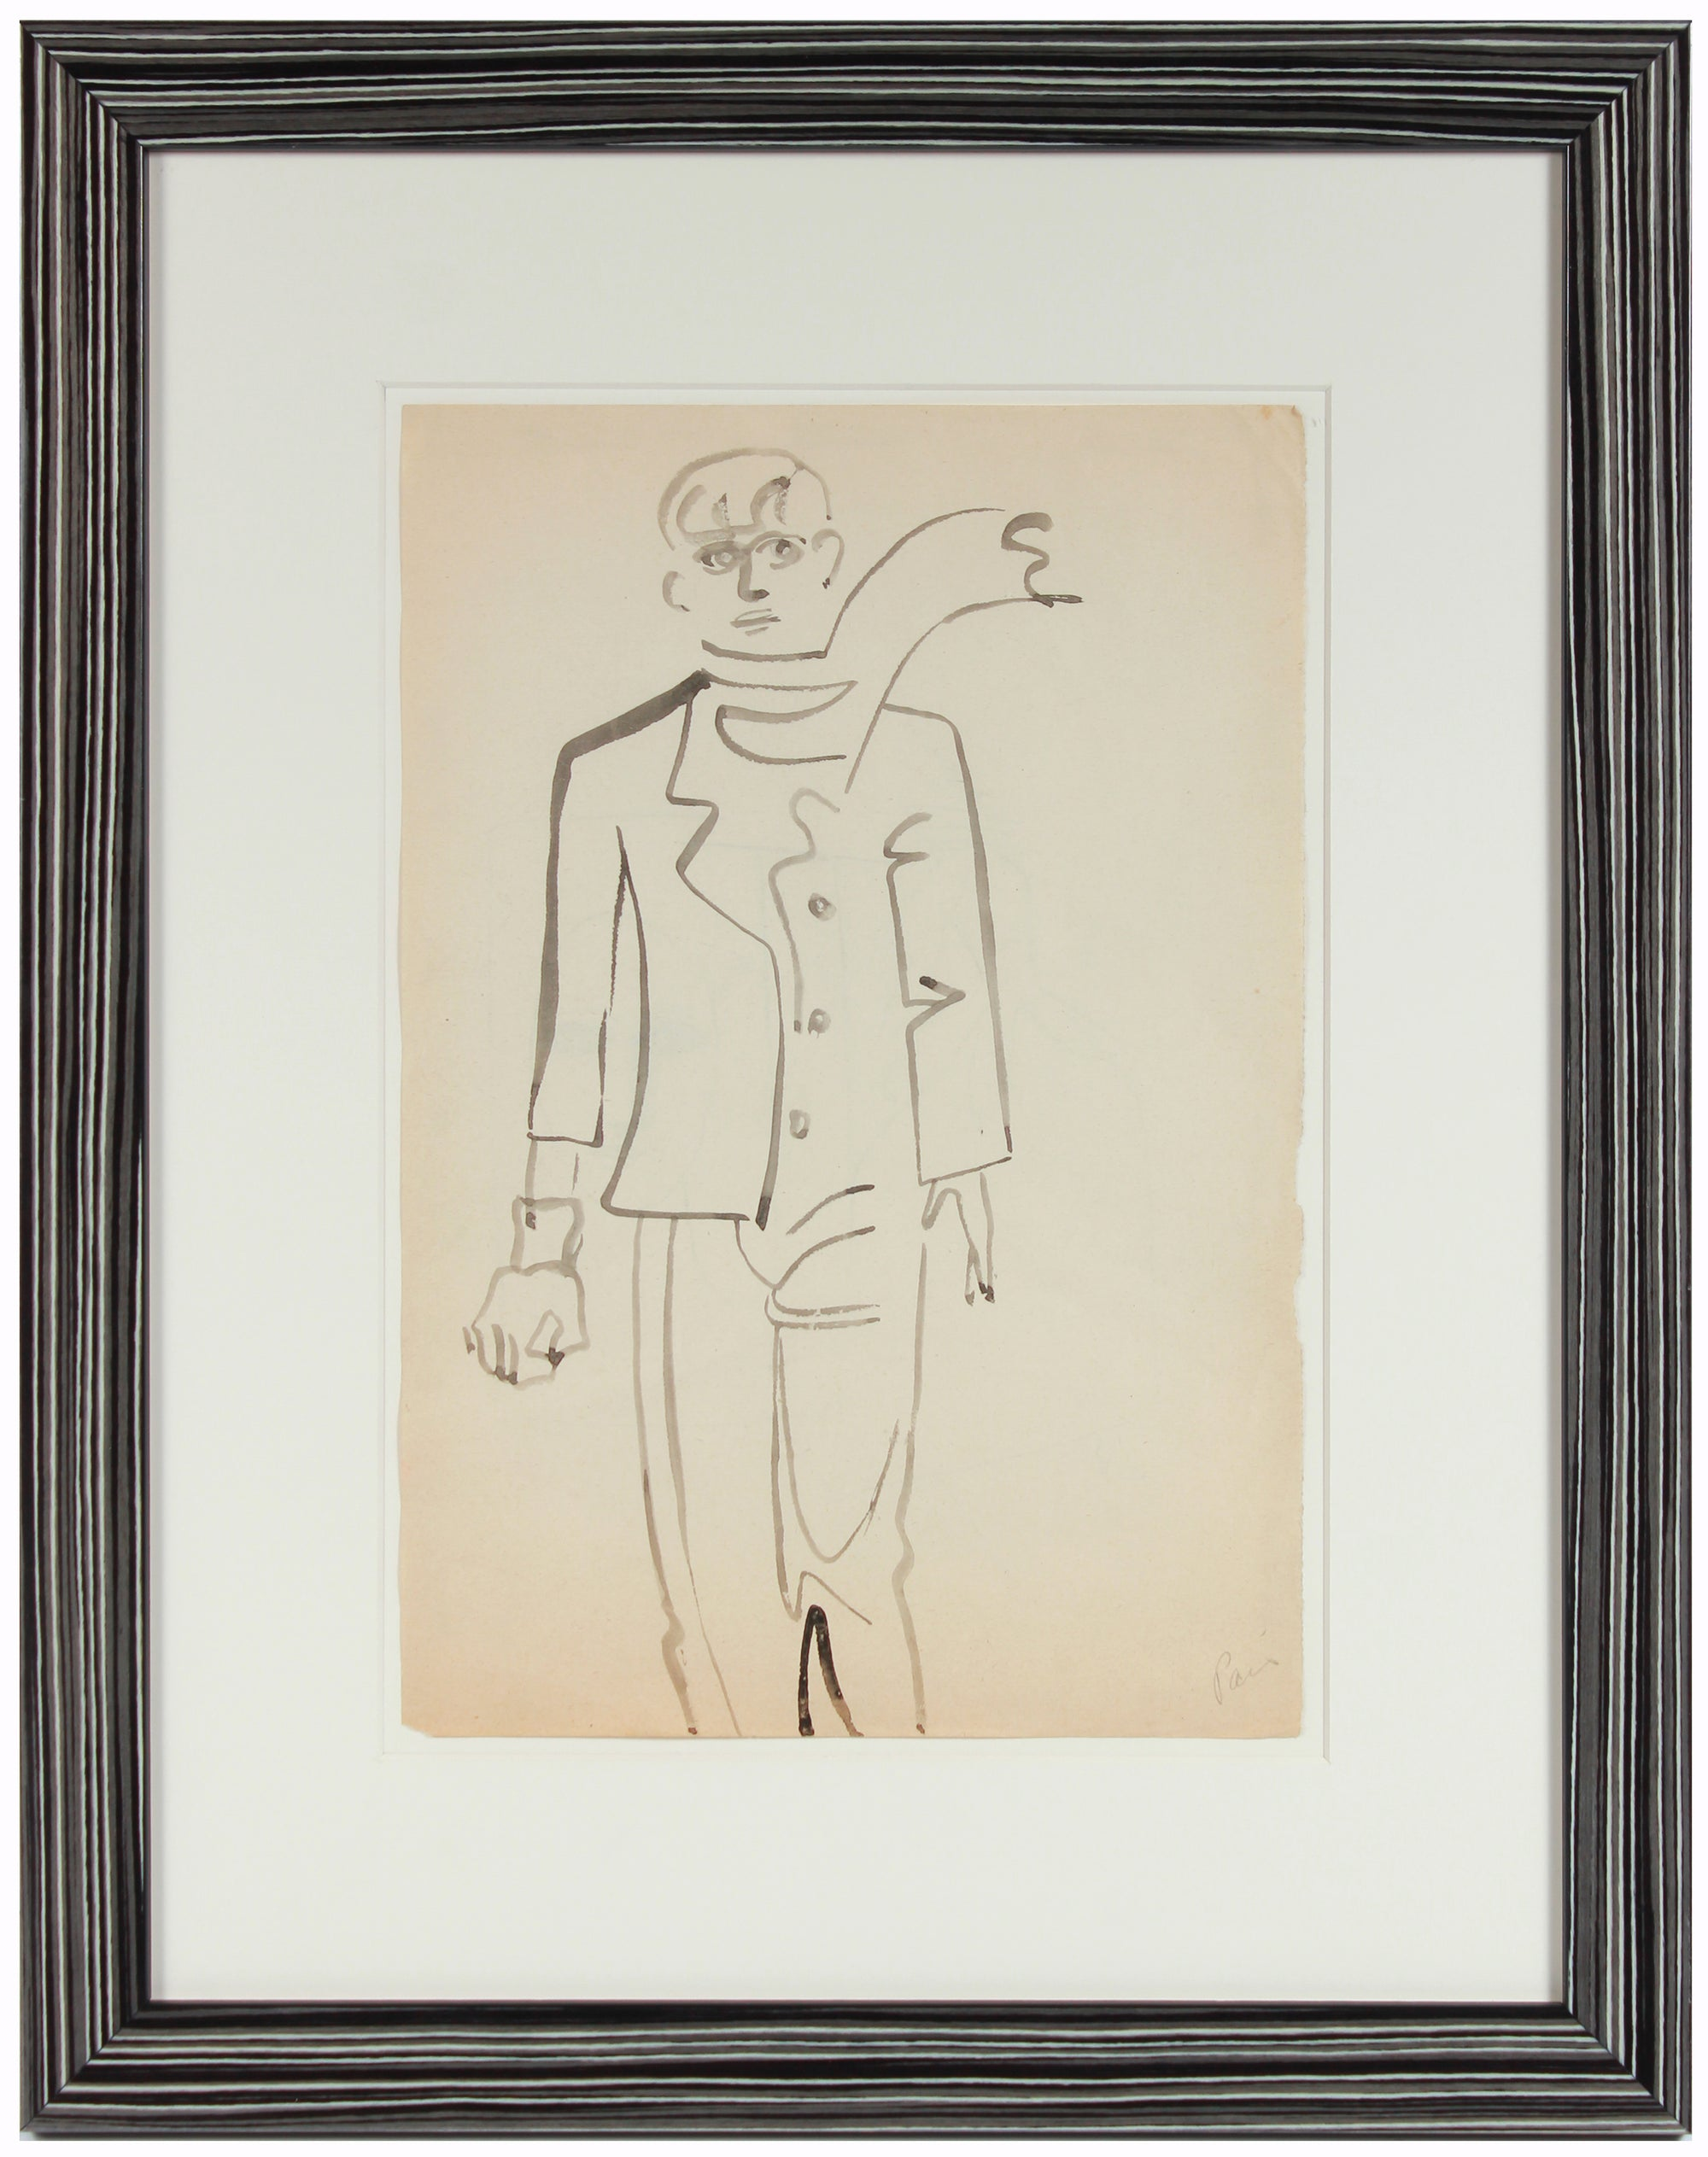 <i>Paris</i>, Man with Scarf <br>1940-50s Charcoal <br><br>#A8412